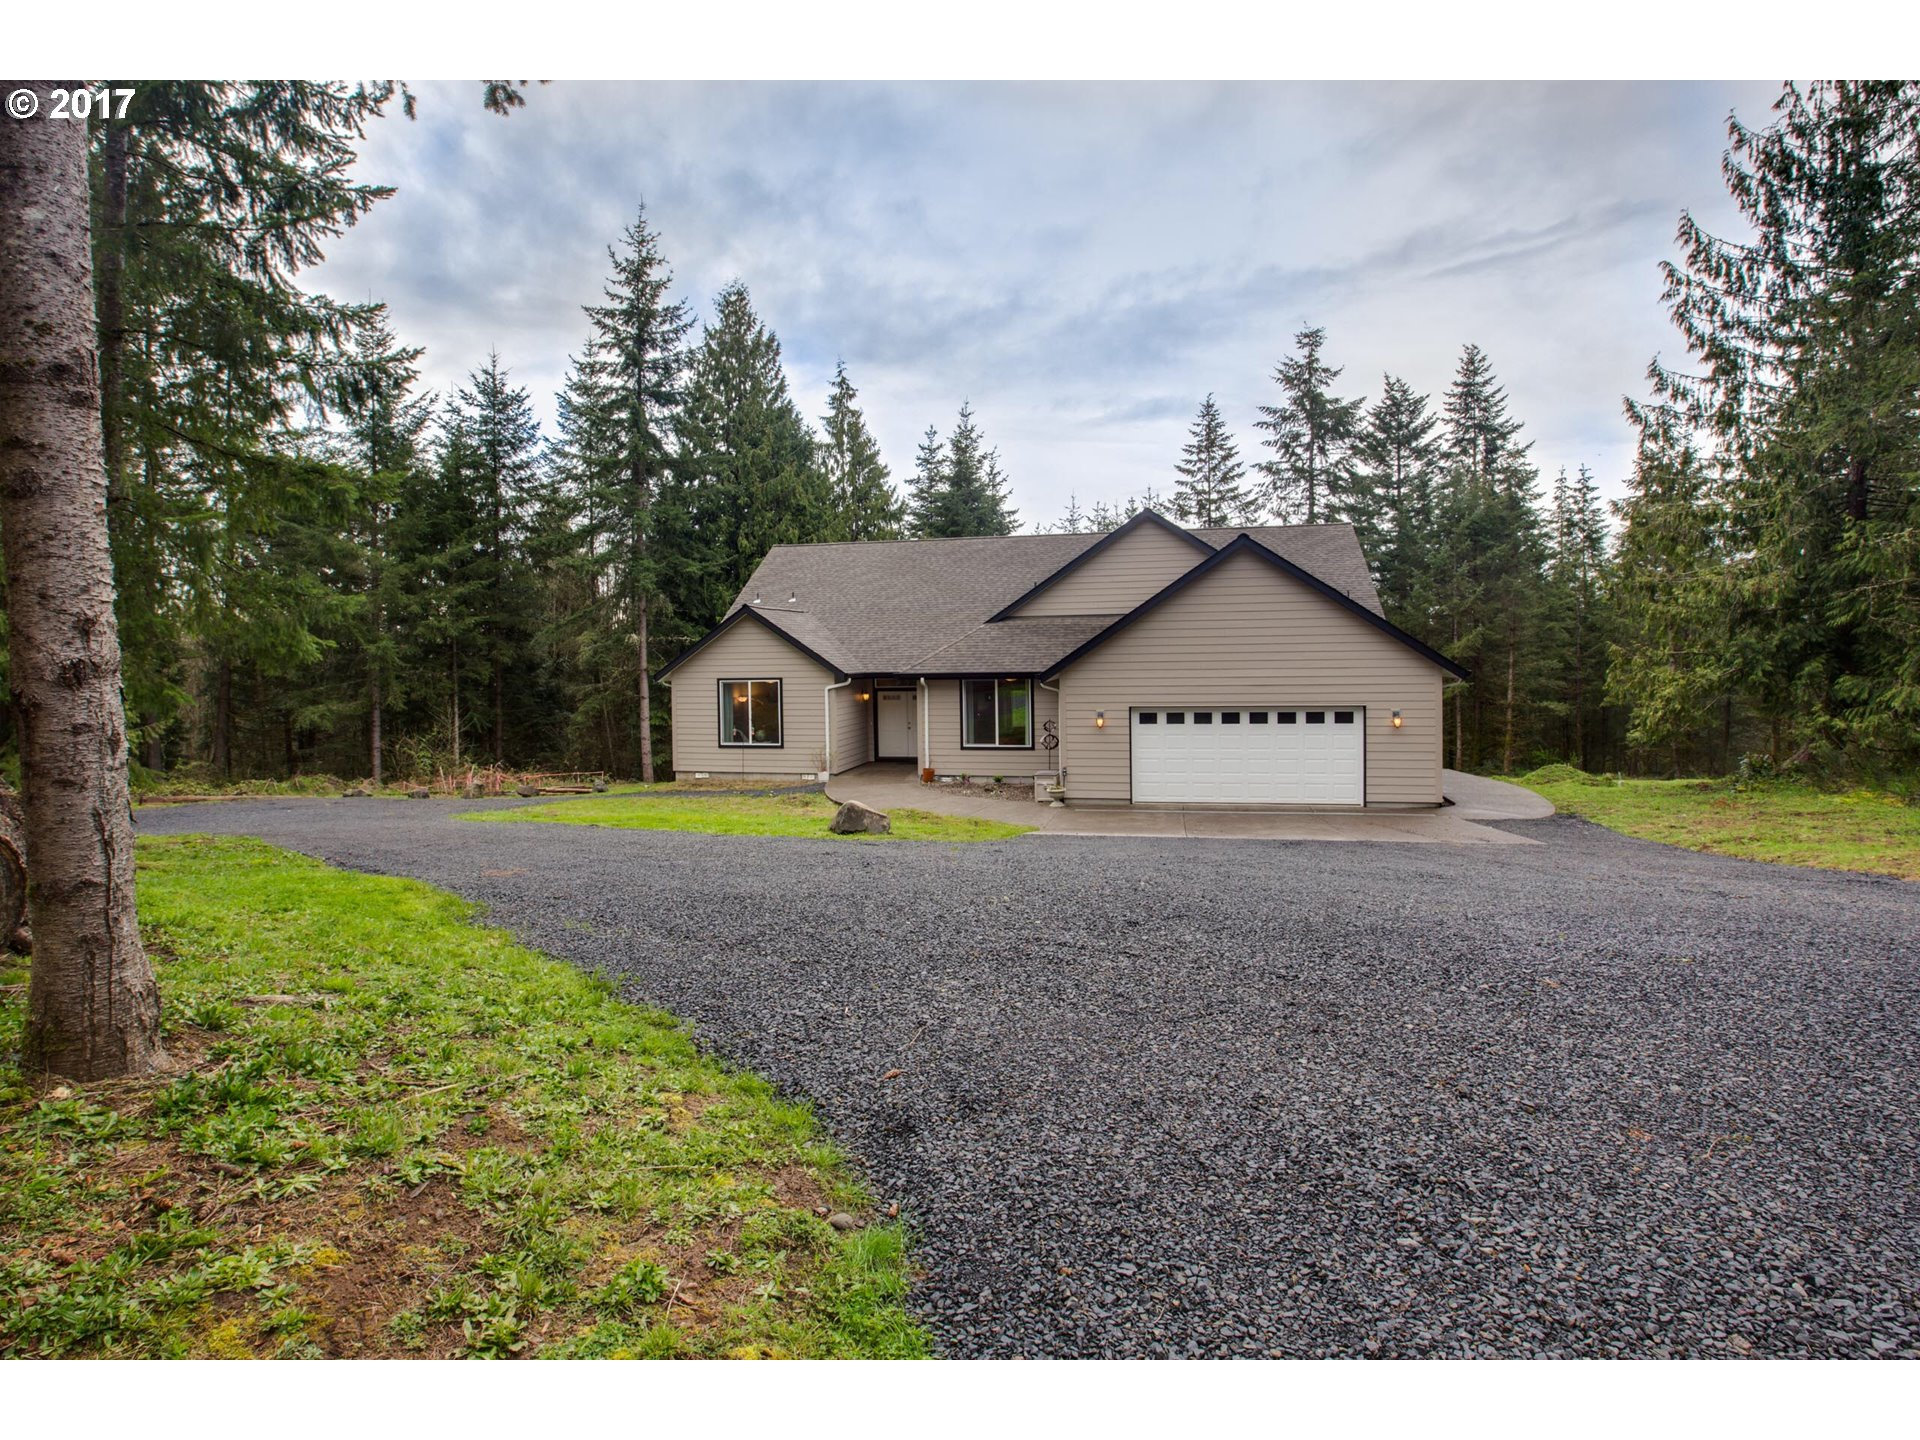 62368 AXEL RD, St. Helens, OR 97051